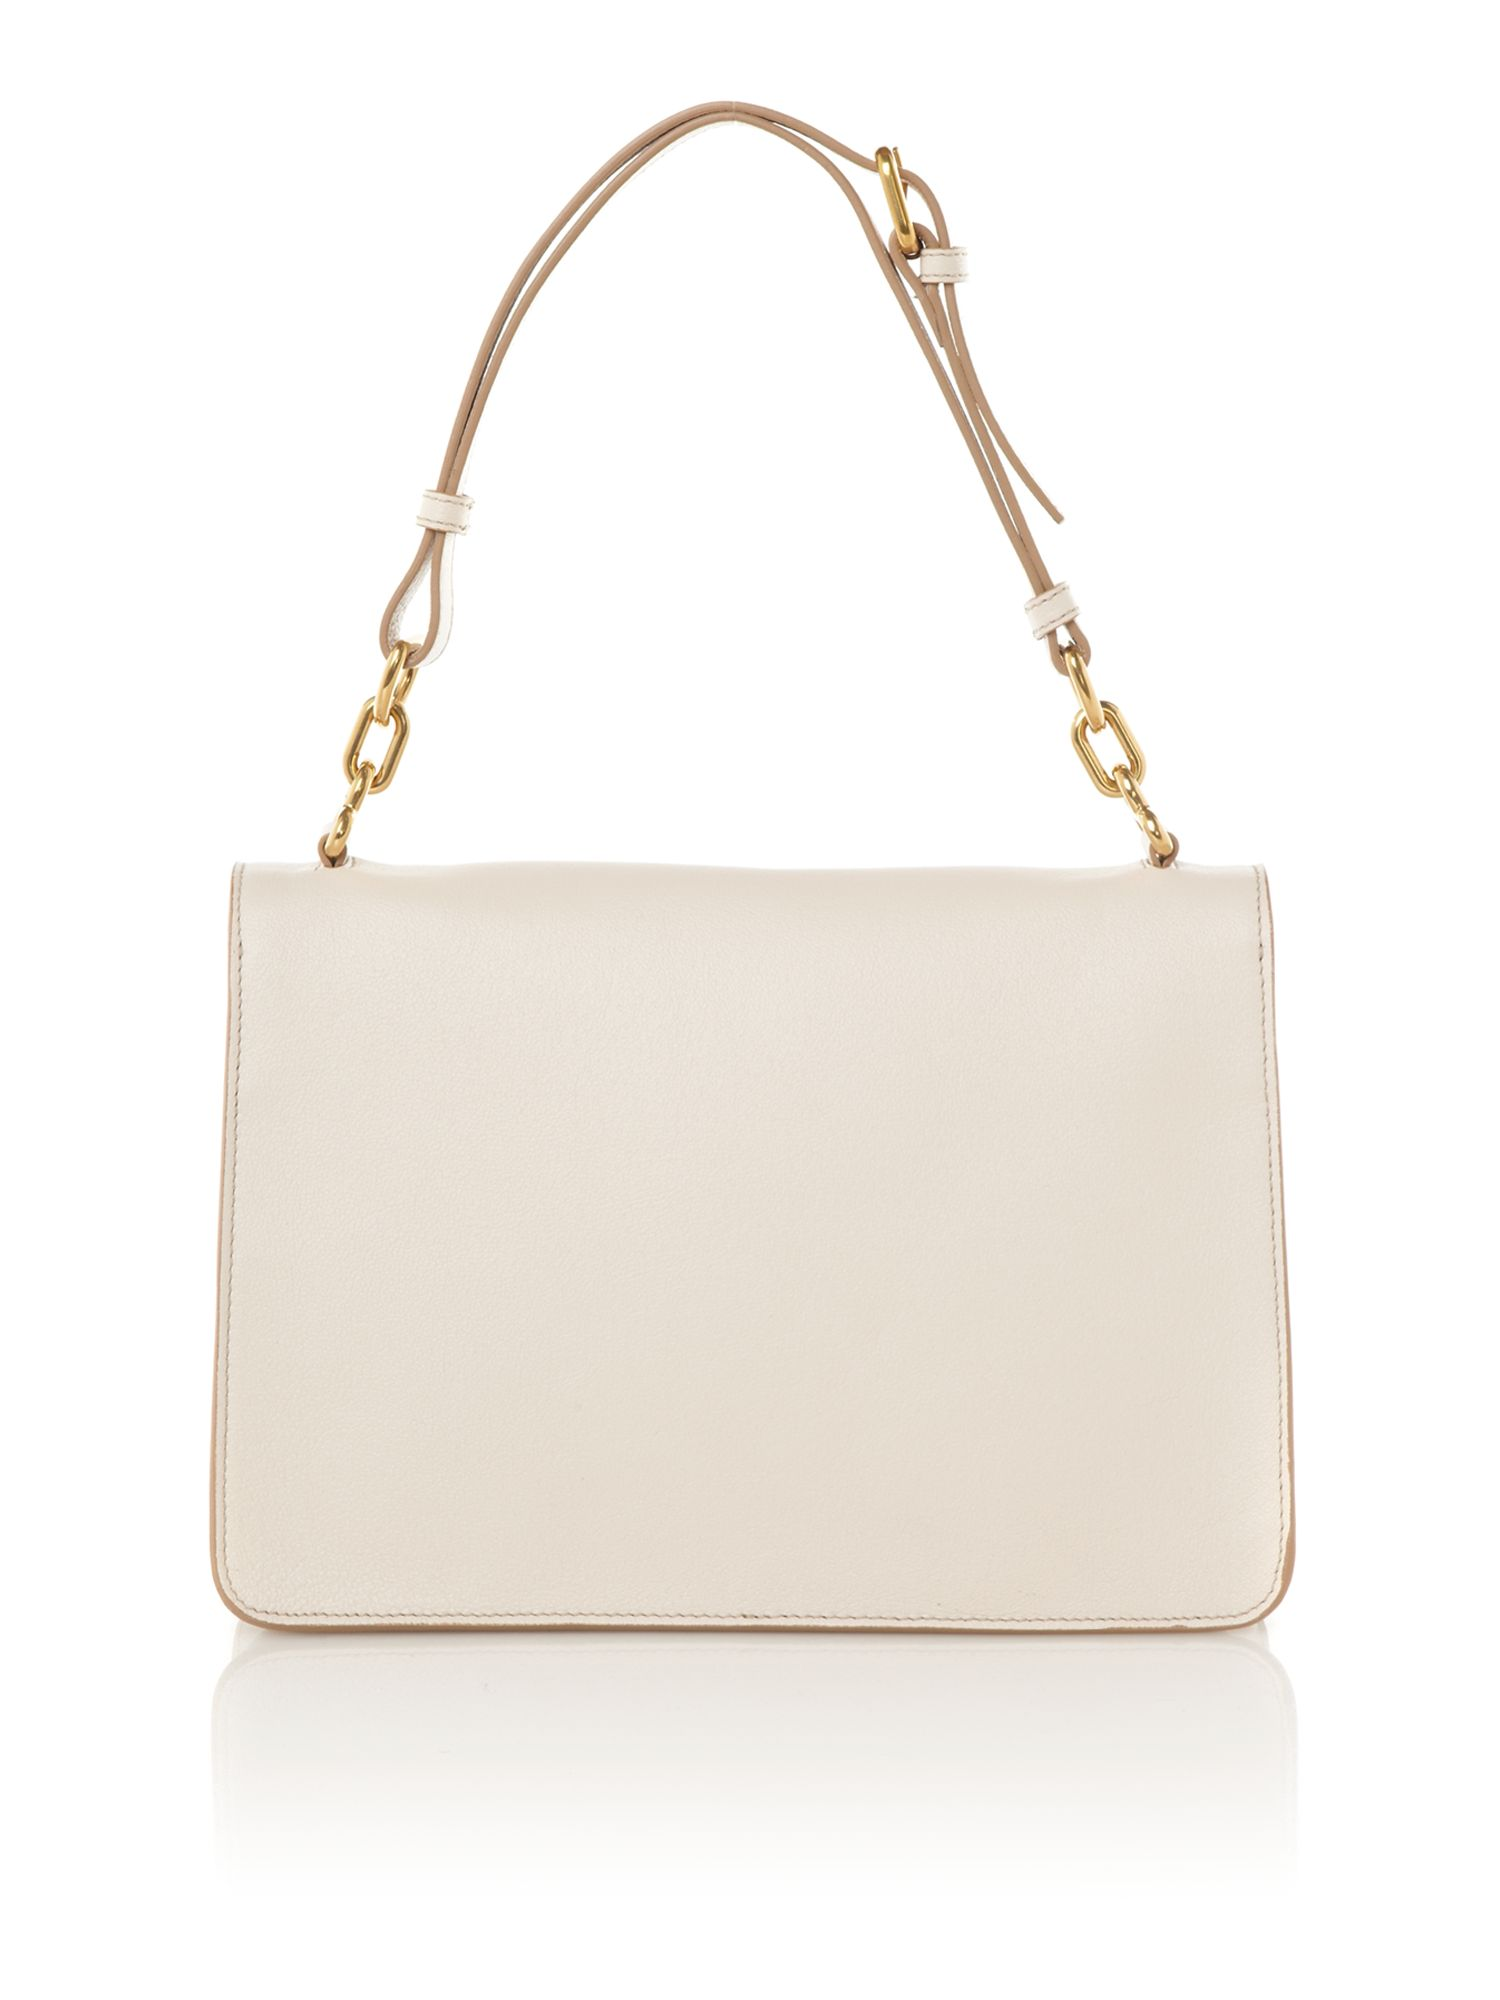 Grenelle shoulder bag